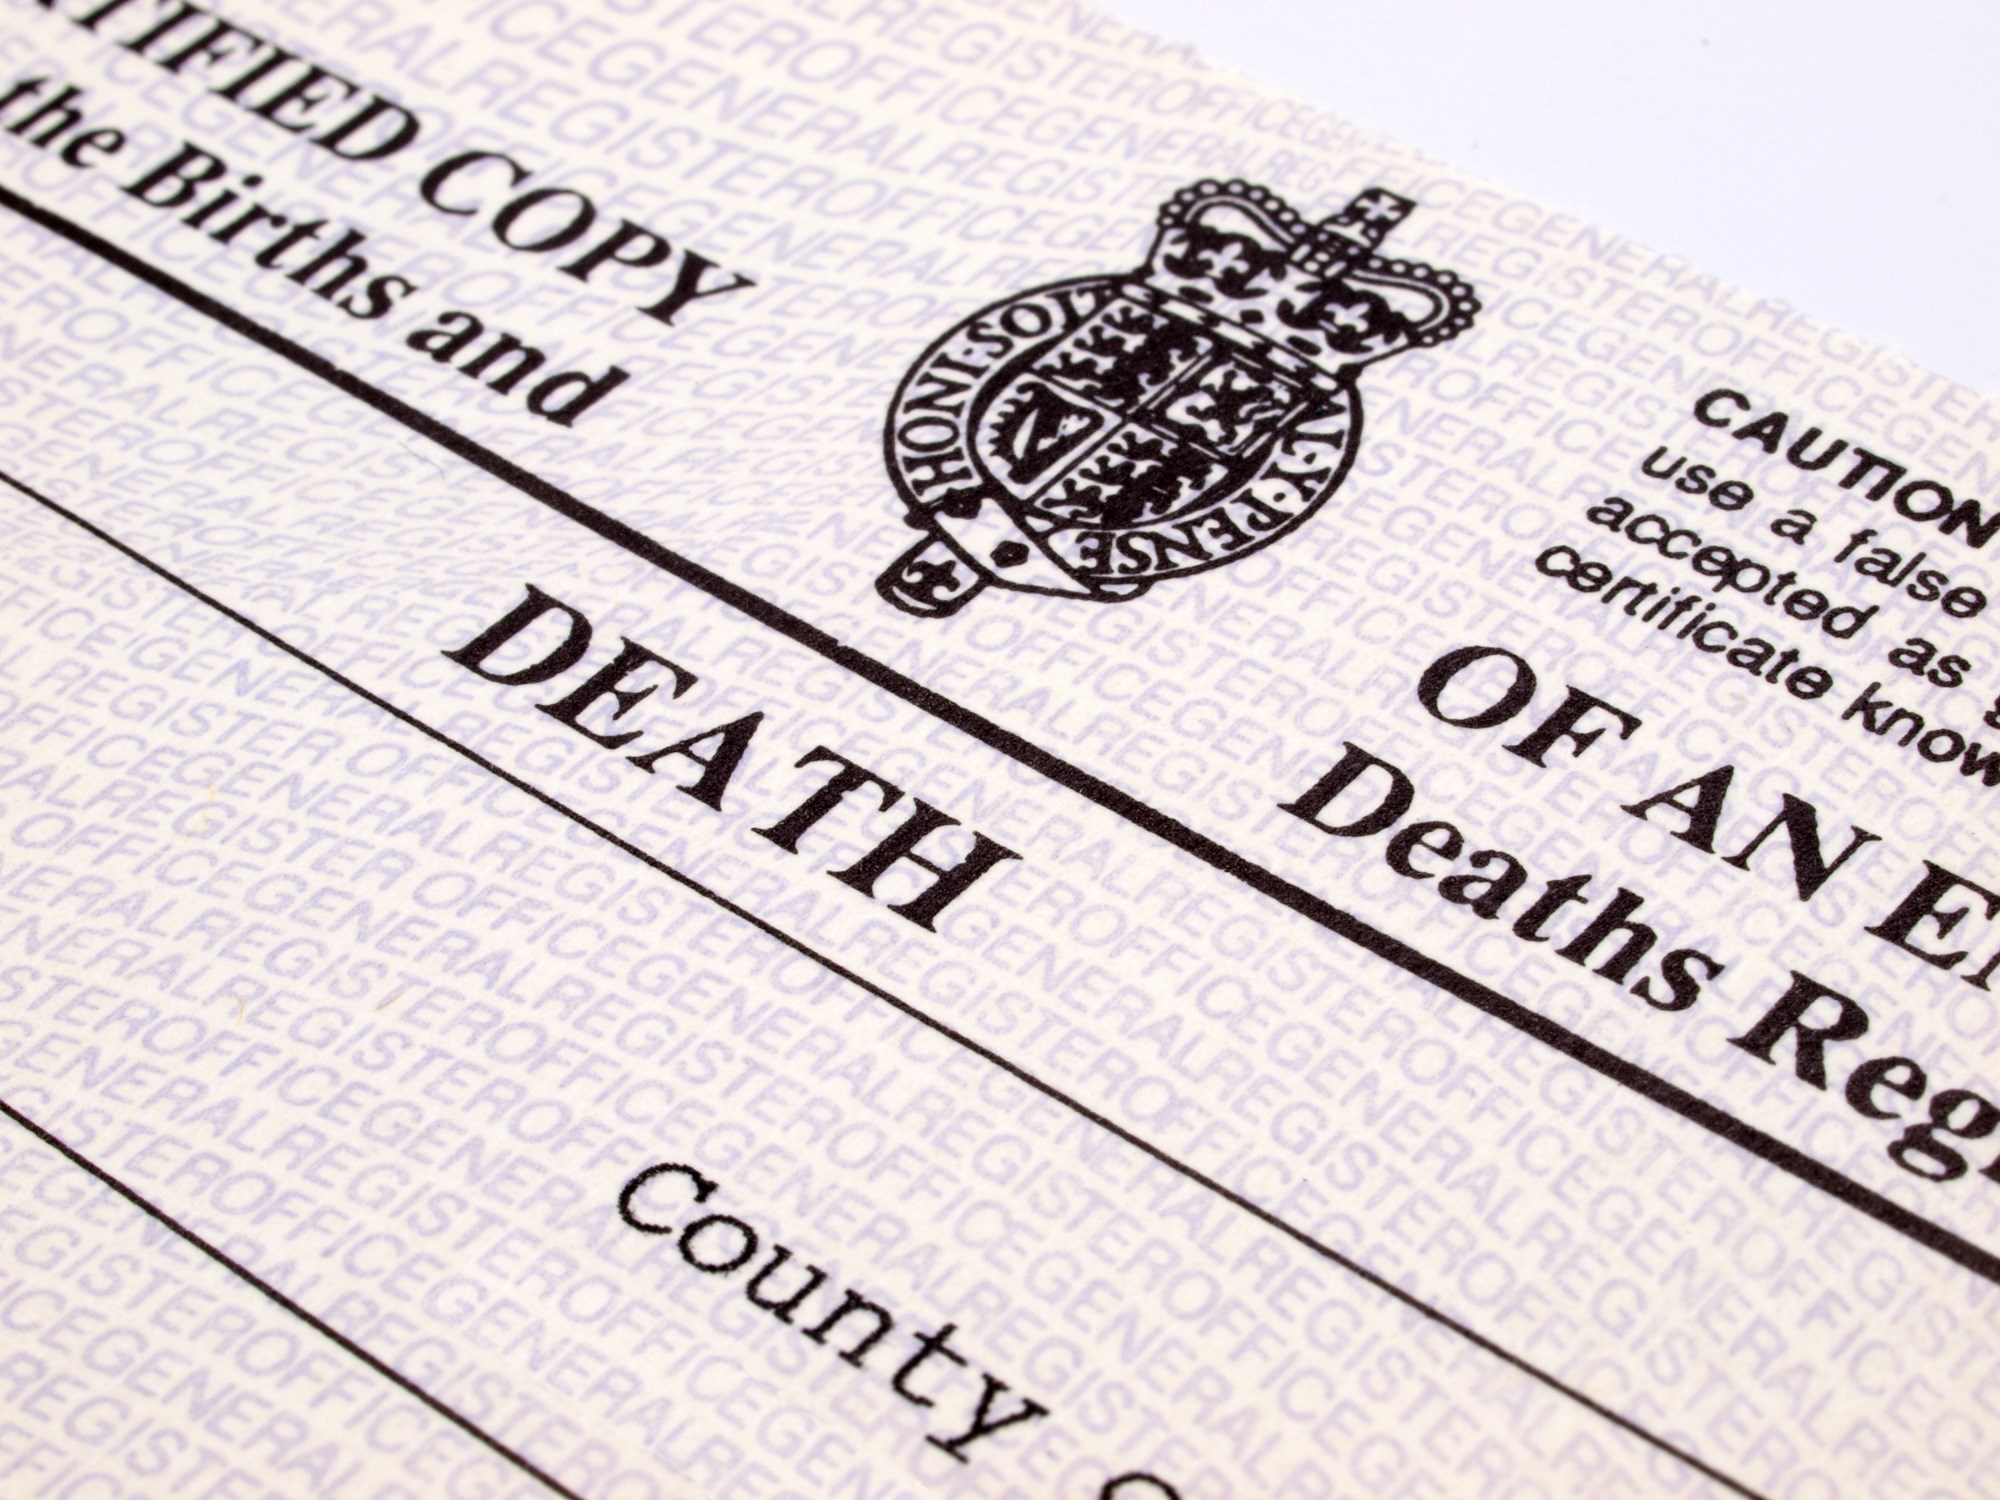 Only 40% of CHB decedents who died from liver disease had hepatitis B reported on their death certificates.